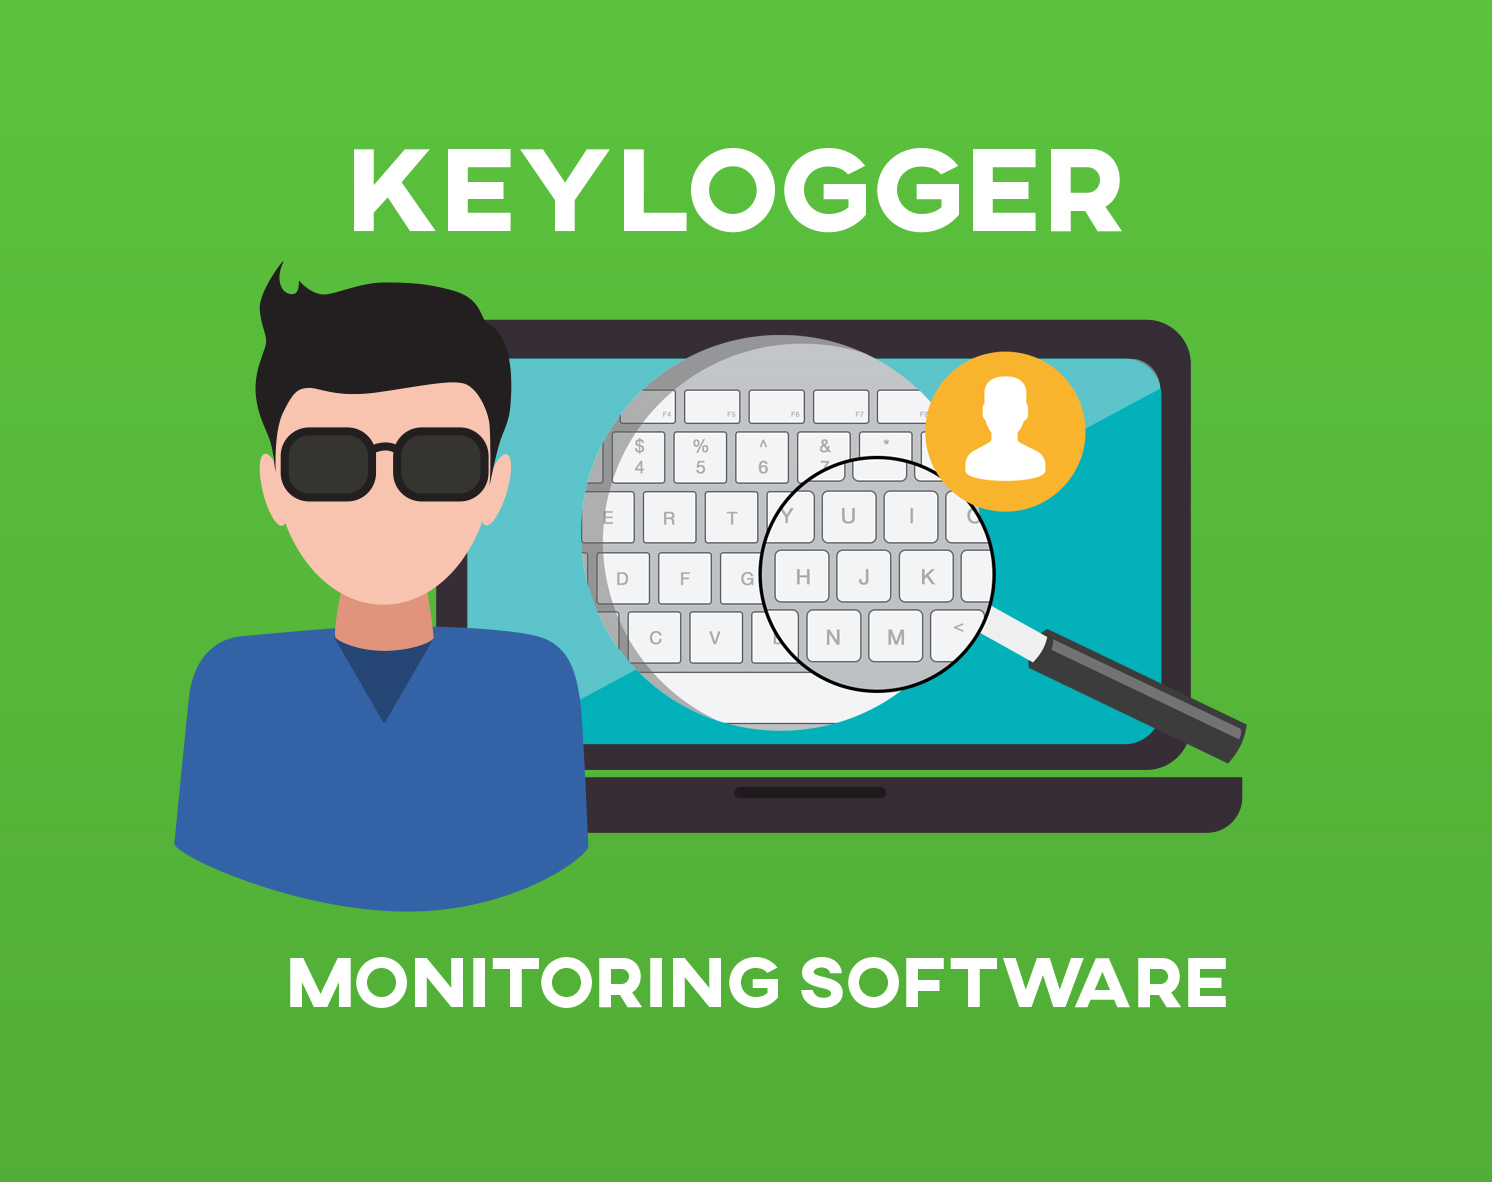 What is a keylogger?